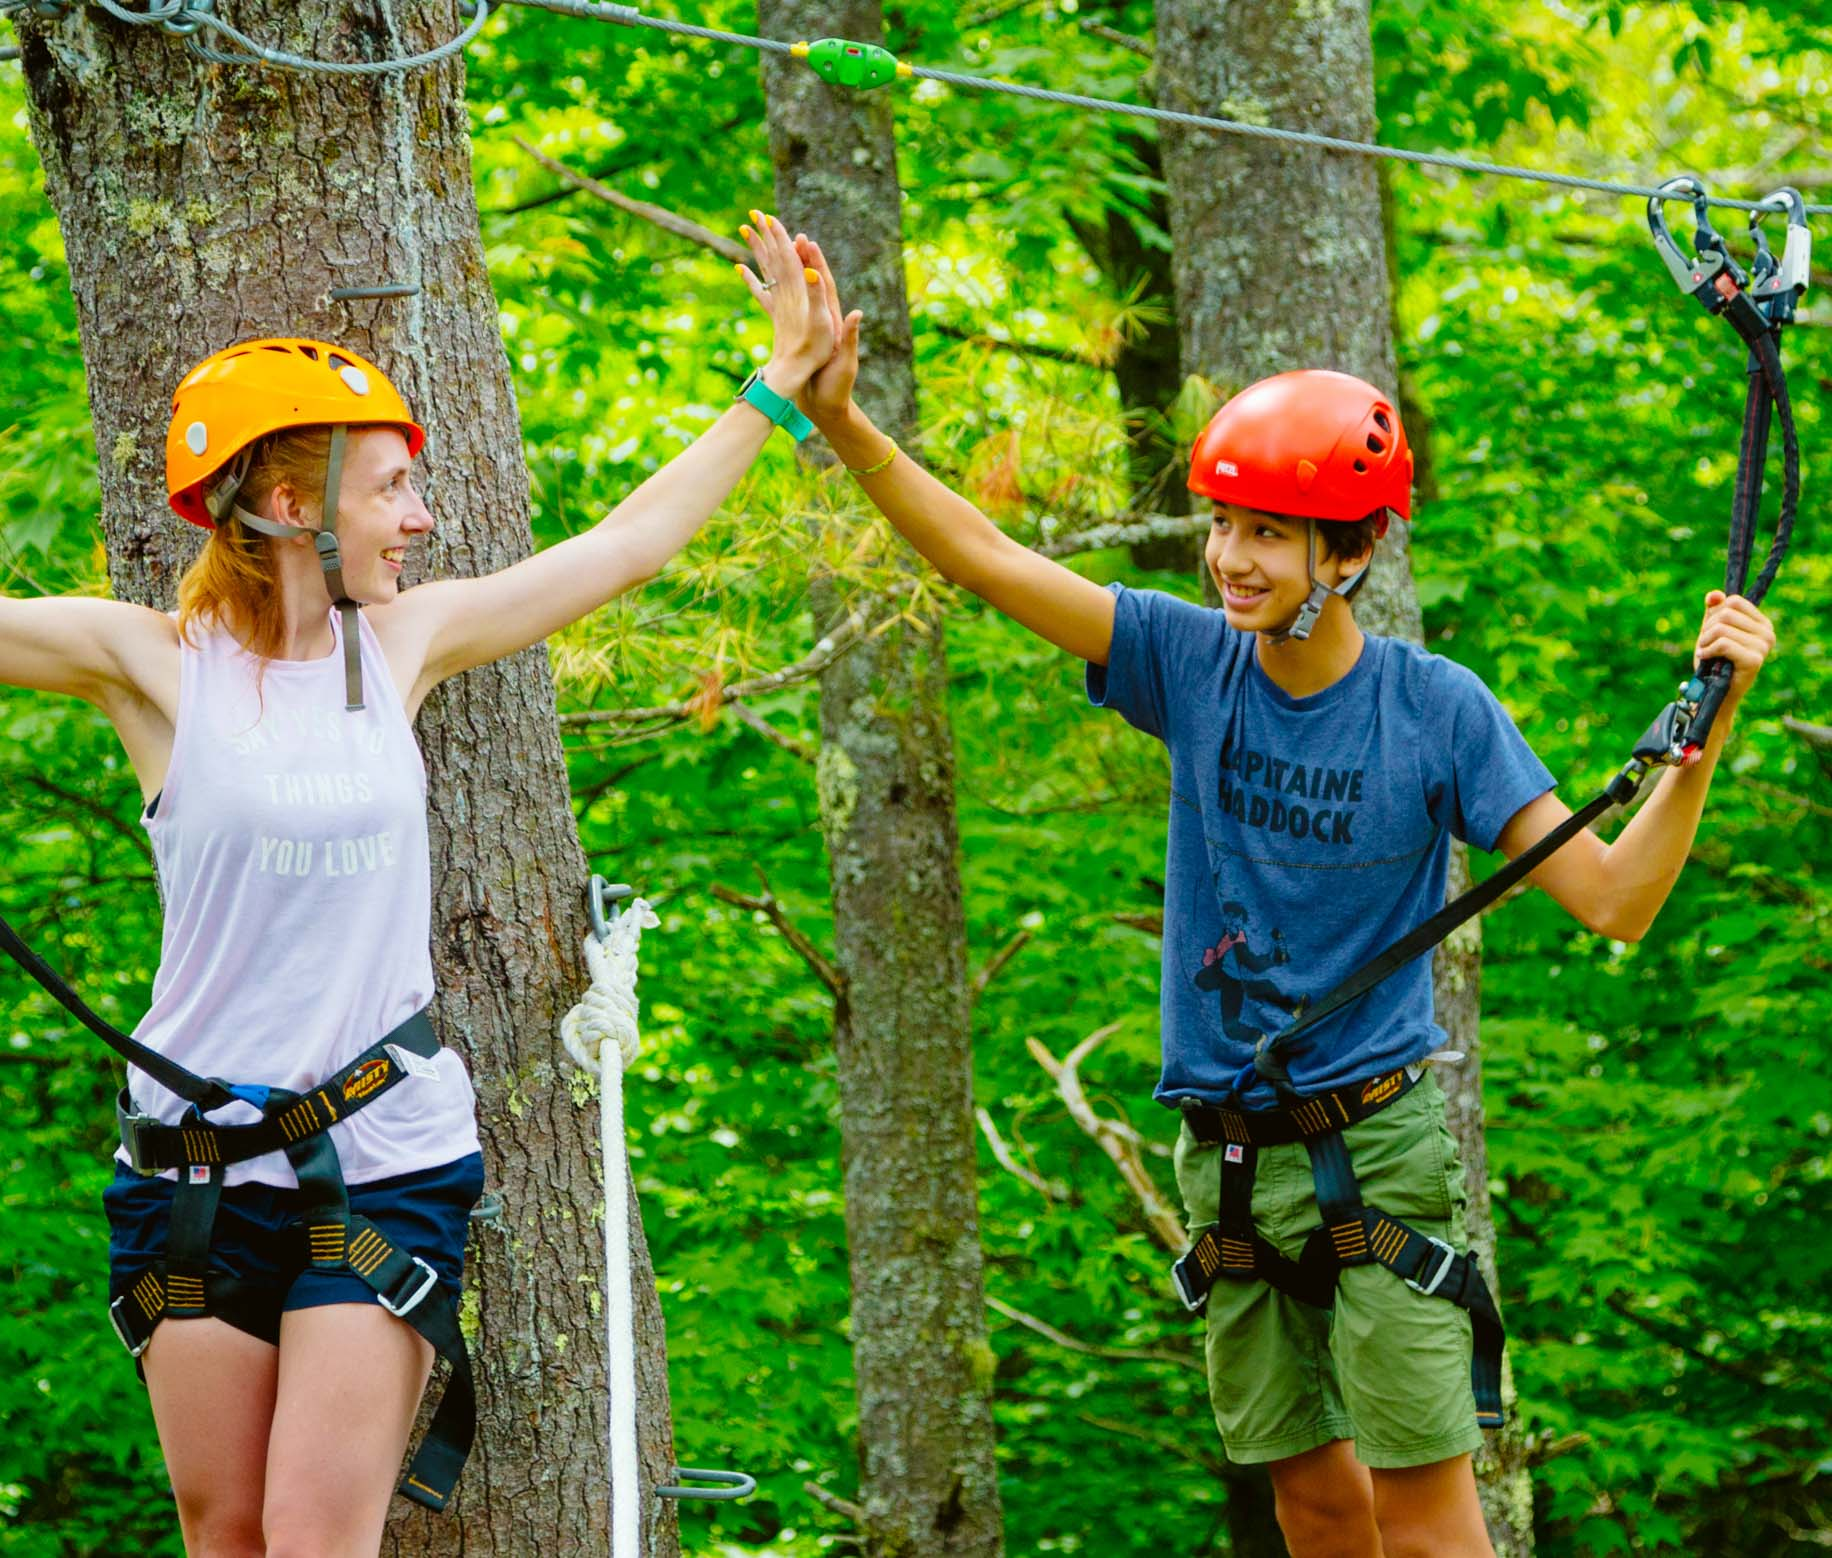 Two campers high fiving on the ropes course